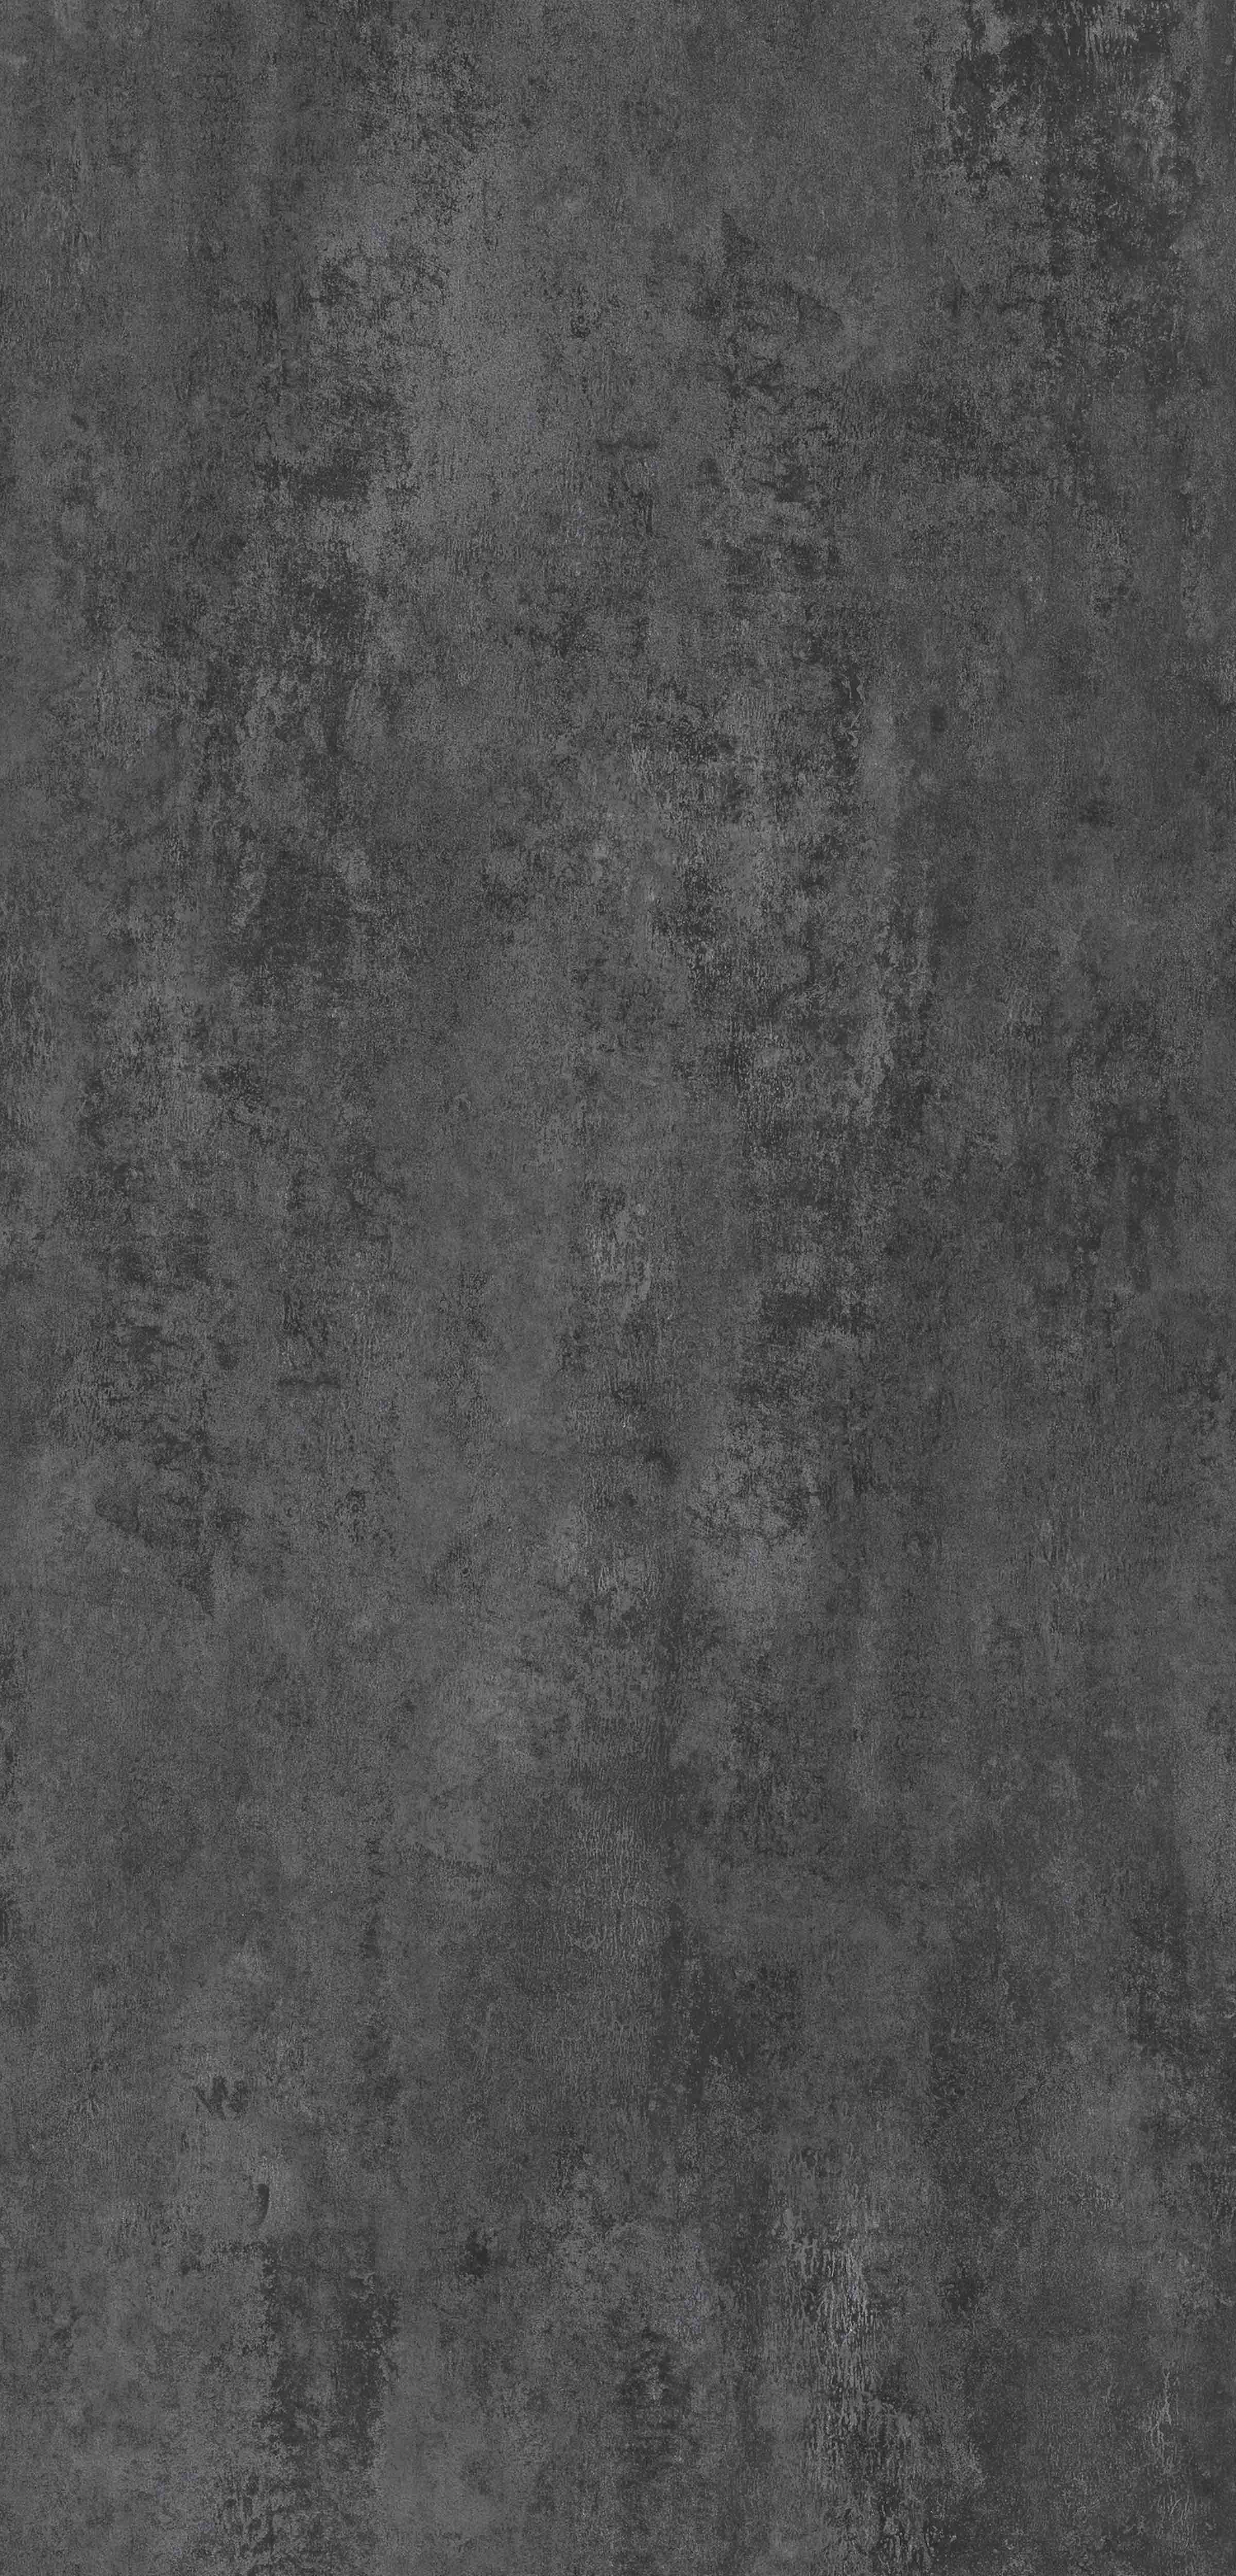 Rappórt | Dark Metalstone, 2979 | Paragon Carpet Tiles | Commercial Carpet Tiles